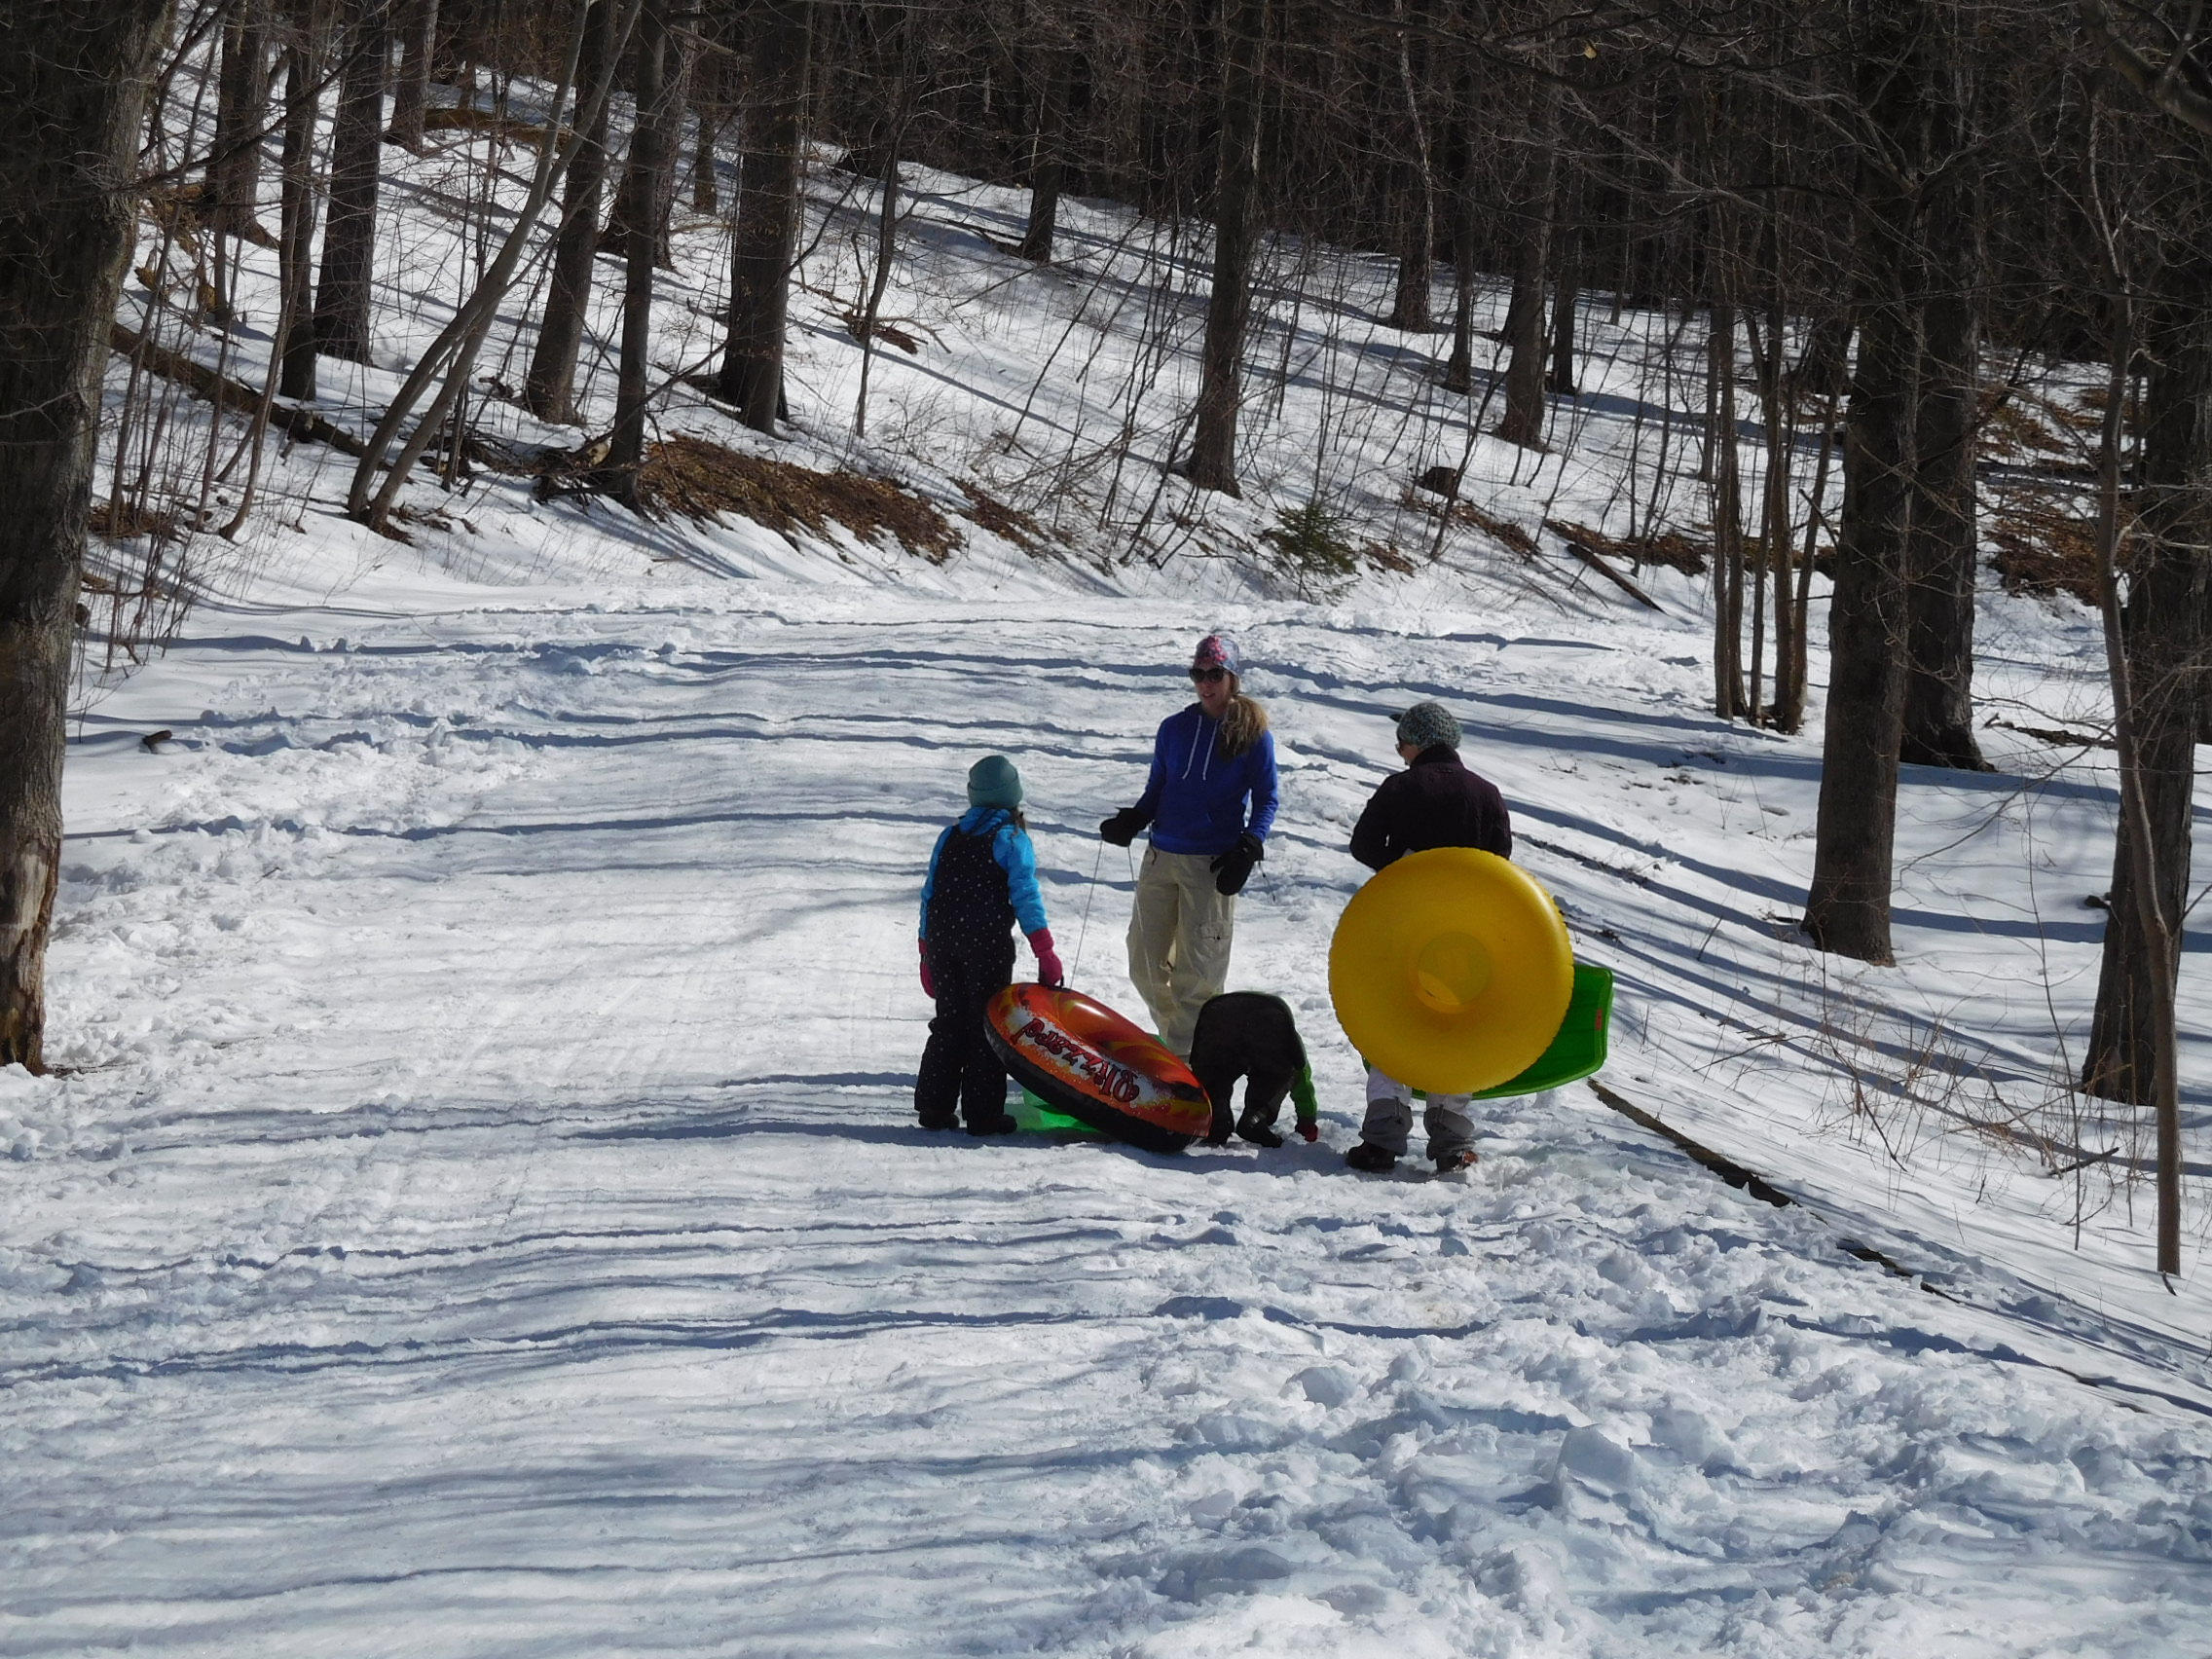 With a beginner slope at the bottom, a trip to Mt. Philo is family fun